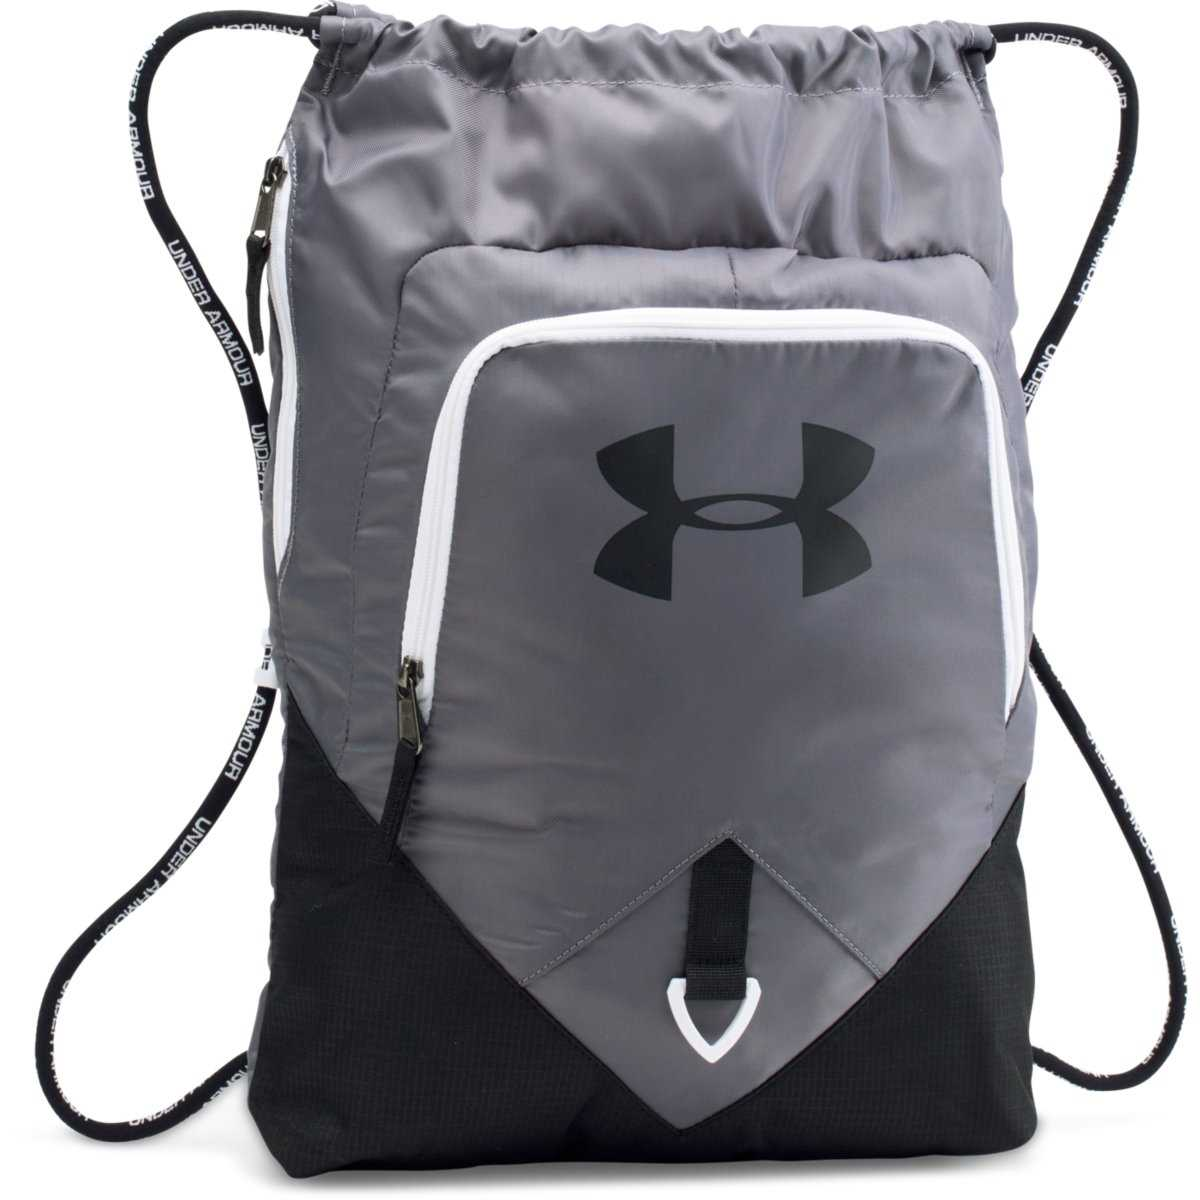 469442d574 Under Armour Undeniable Sackpack - Graphite Black White